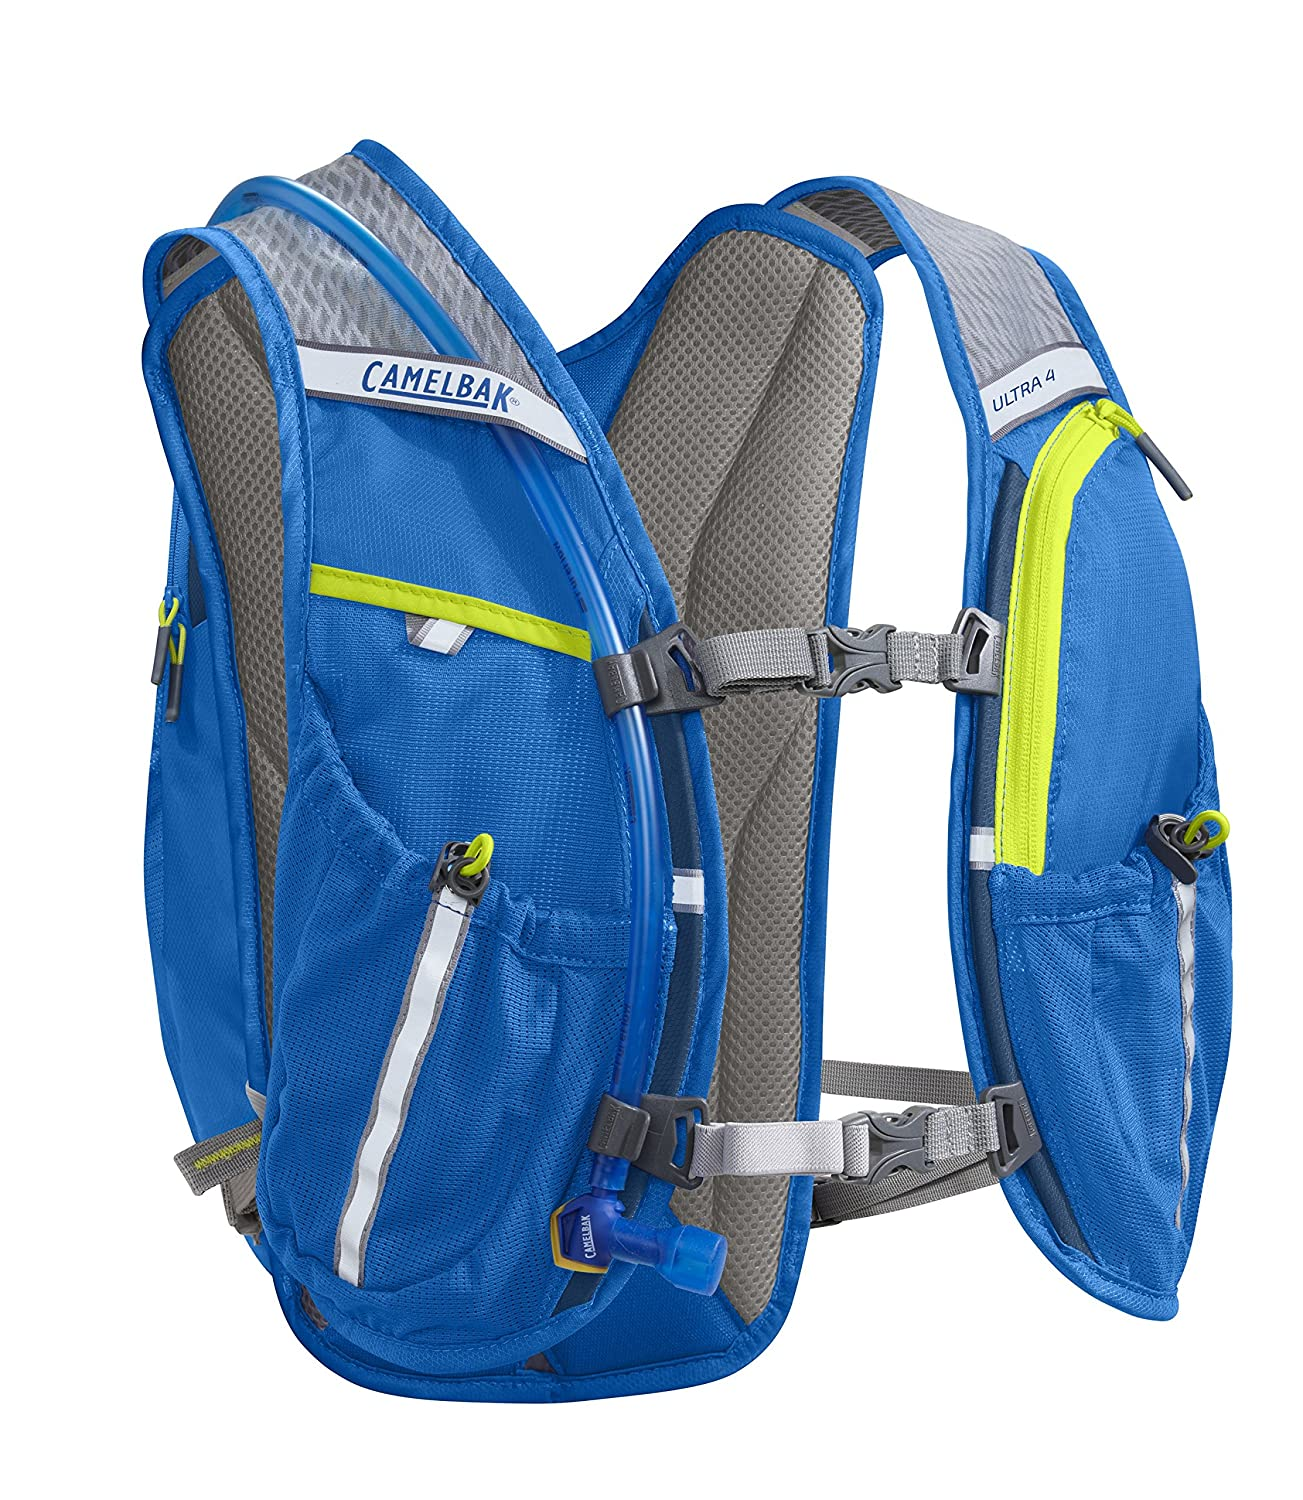 9d9af75120 Camelbak Ultra 4 Vest - Electric Blue/Poseidon, 70 oz: Amazon.co.uk: Sports  & Outdoors